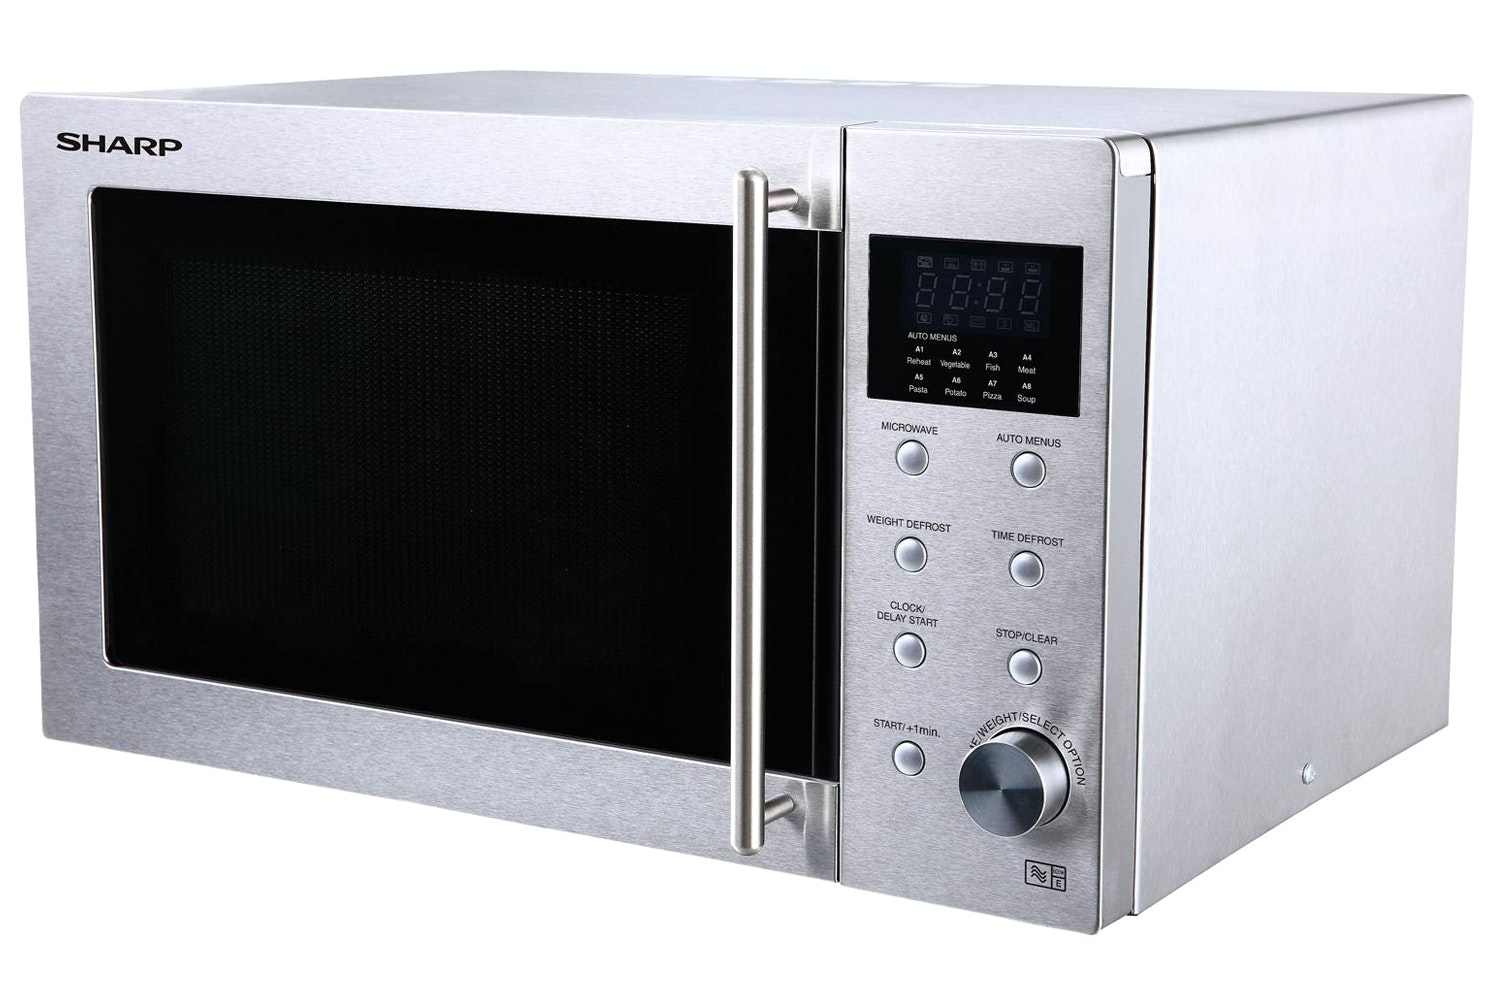 Sharp 23L 800W Solo Microwave | Stainless Steel